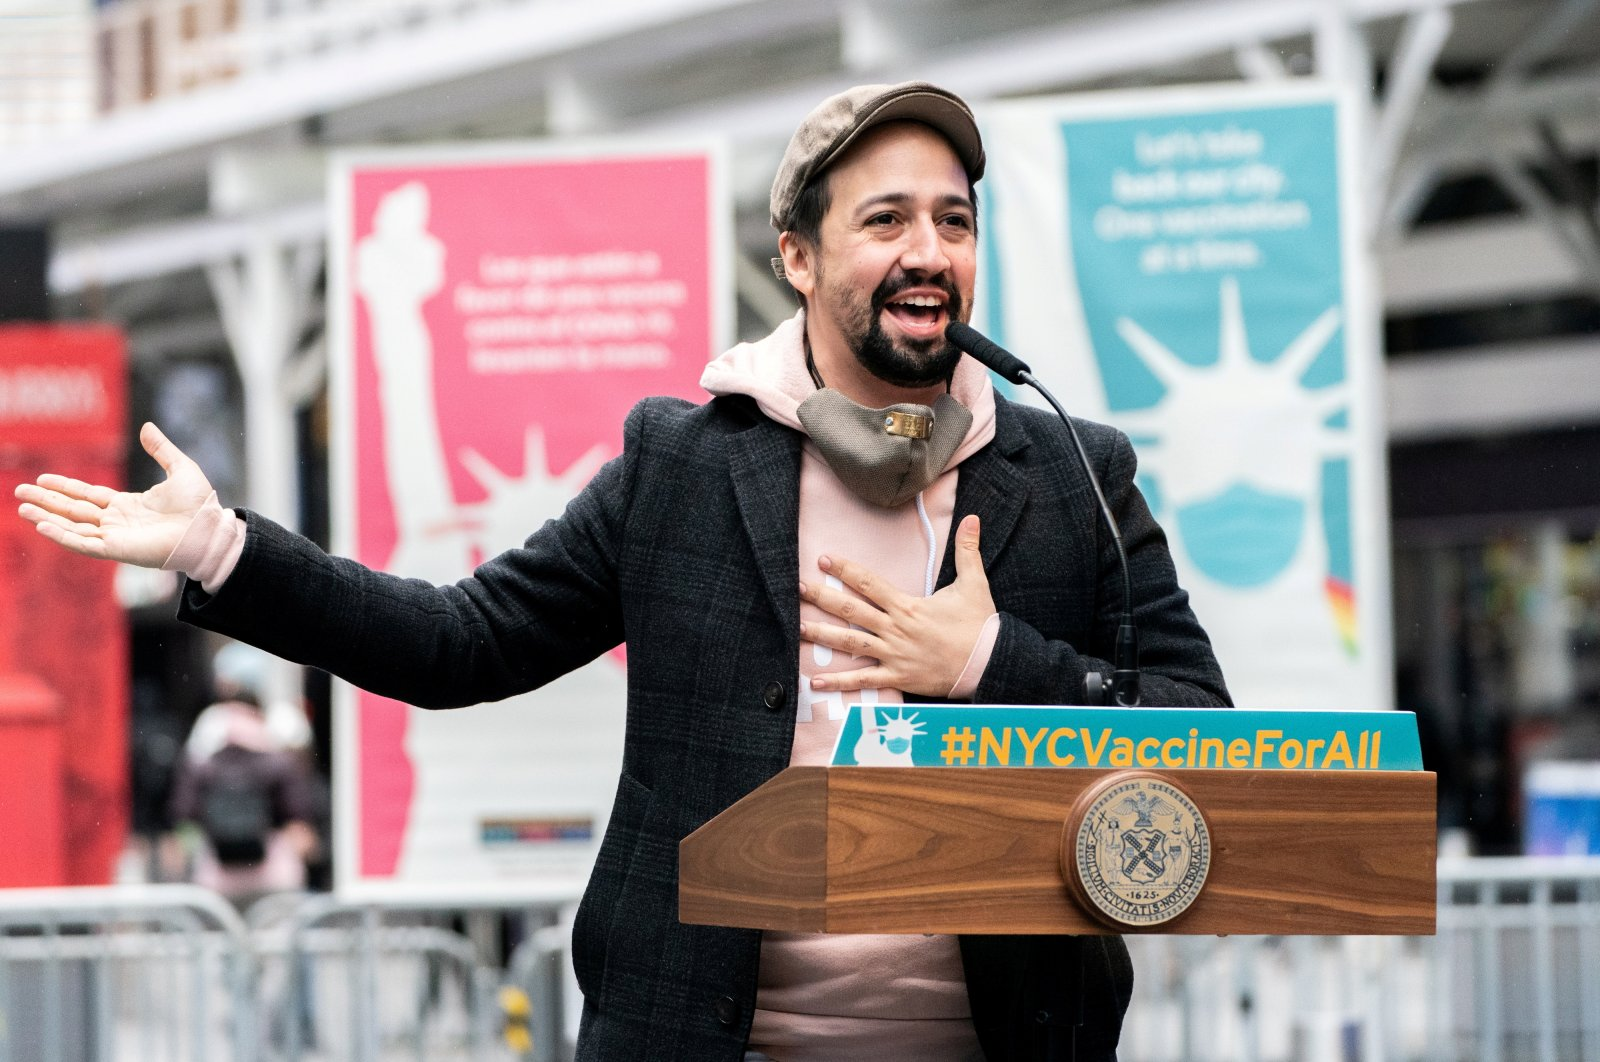 Actor Lin-Manuel Miranda speaks at the opening of the Broadway vaccination site amid the COVID-19 pandemic in New York City, U.S., April 12, 2021. (Reuters Photo)